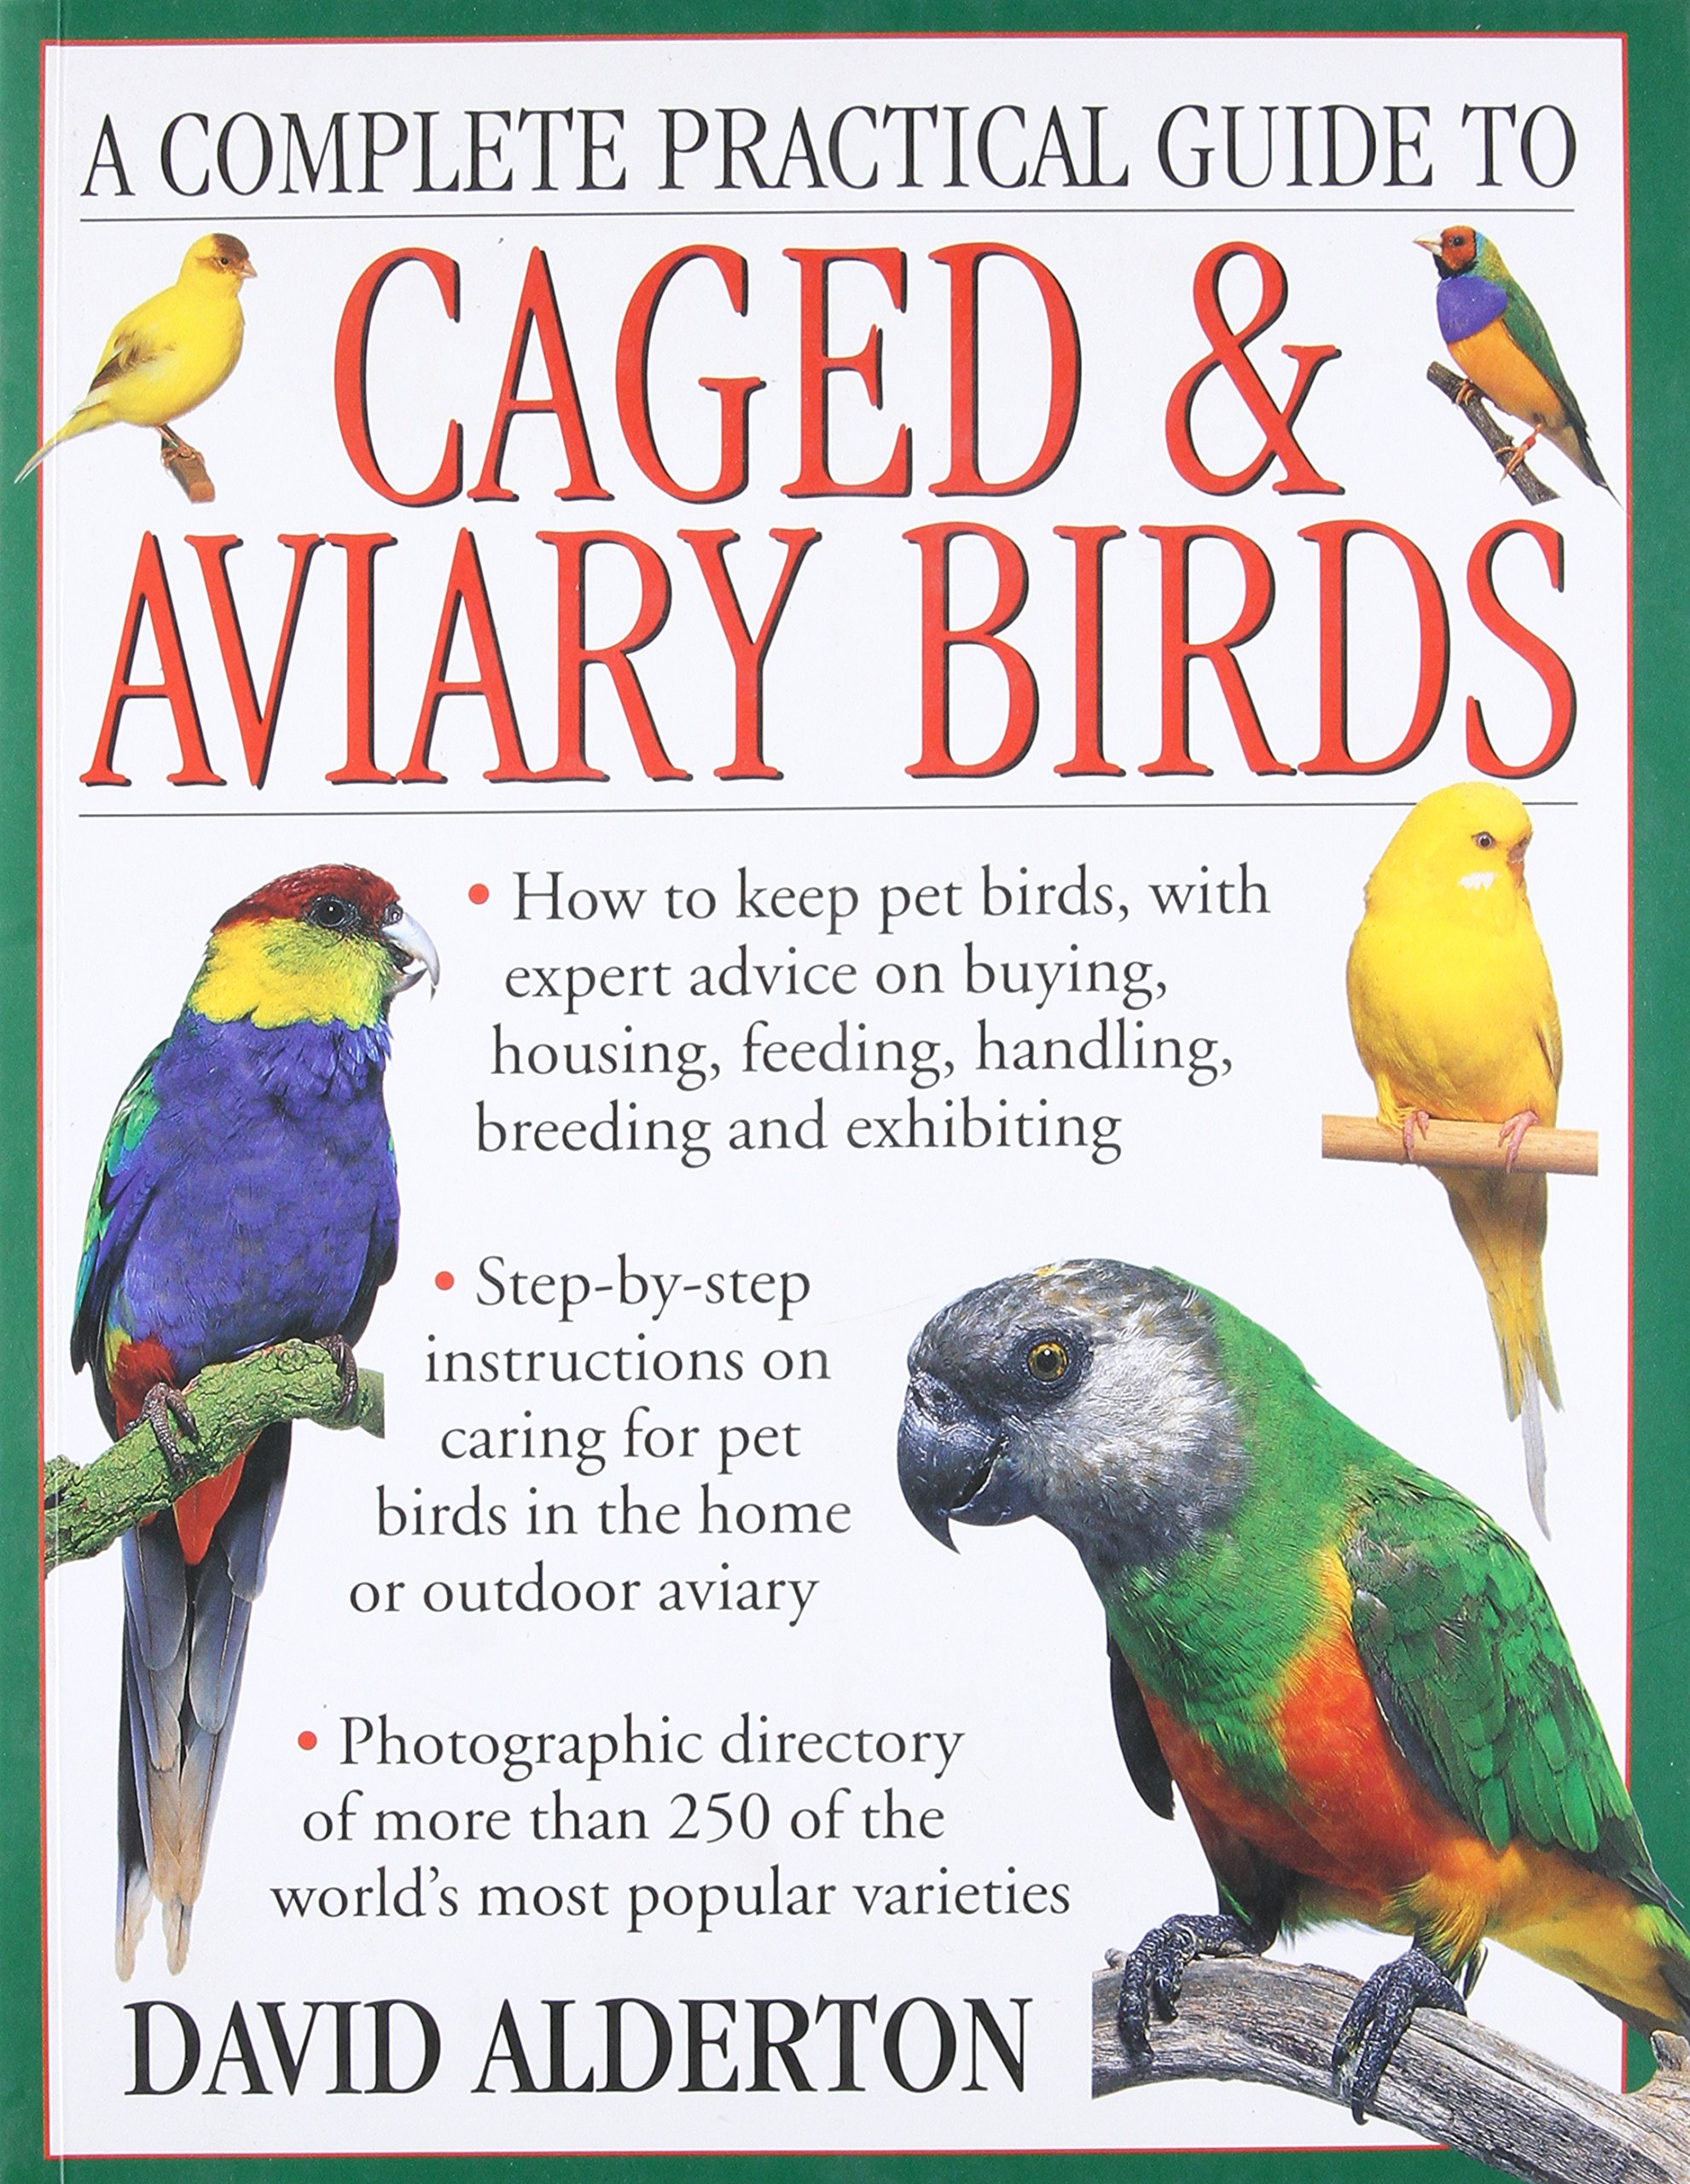 A Complete Practical Guide To Caged Aviary Birds How To Keep Pet Birds With Expert Advice On Buying Housing Feeding Handling Breeding And Exhibiting Alderton David 9781780194677 Amazon Com Books